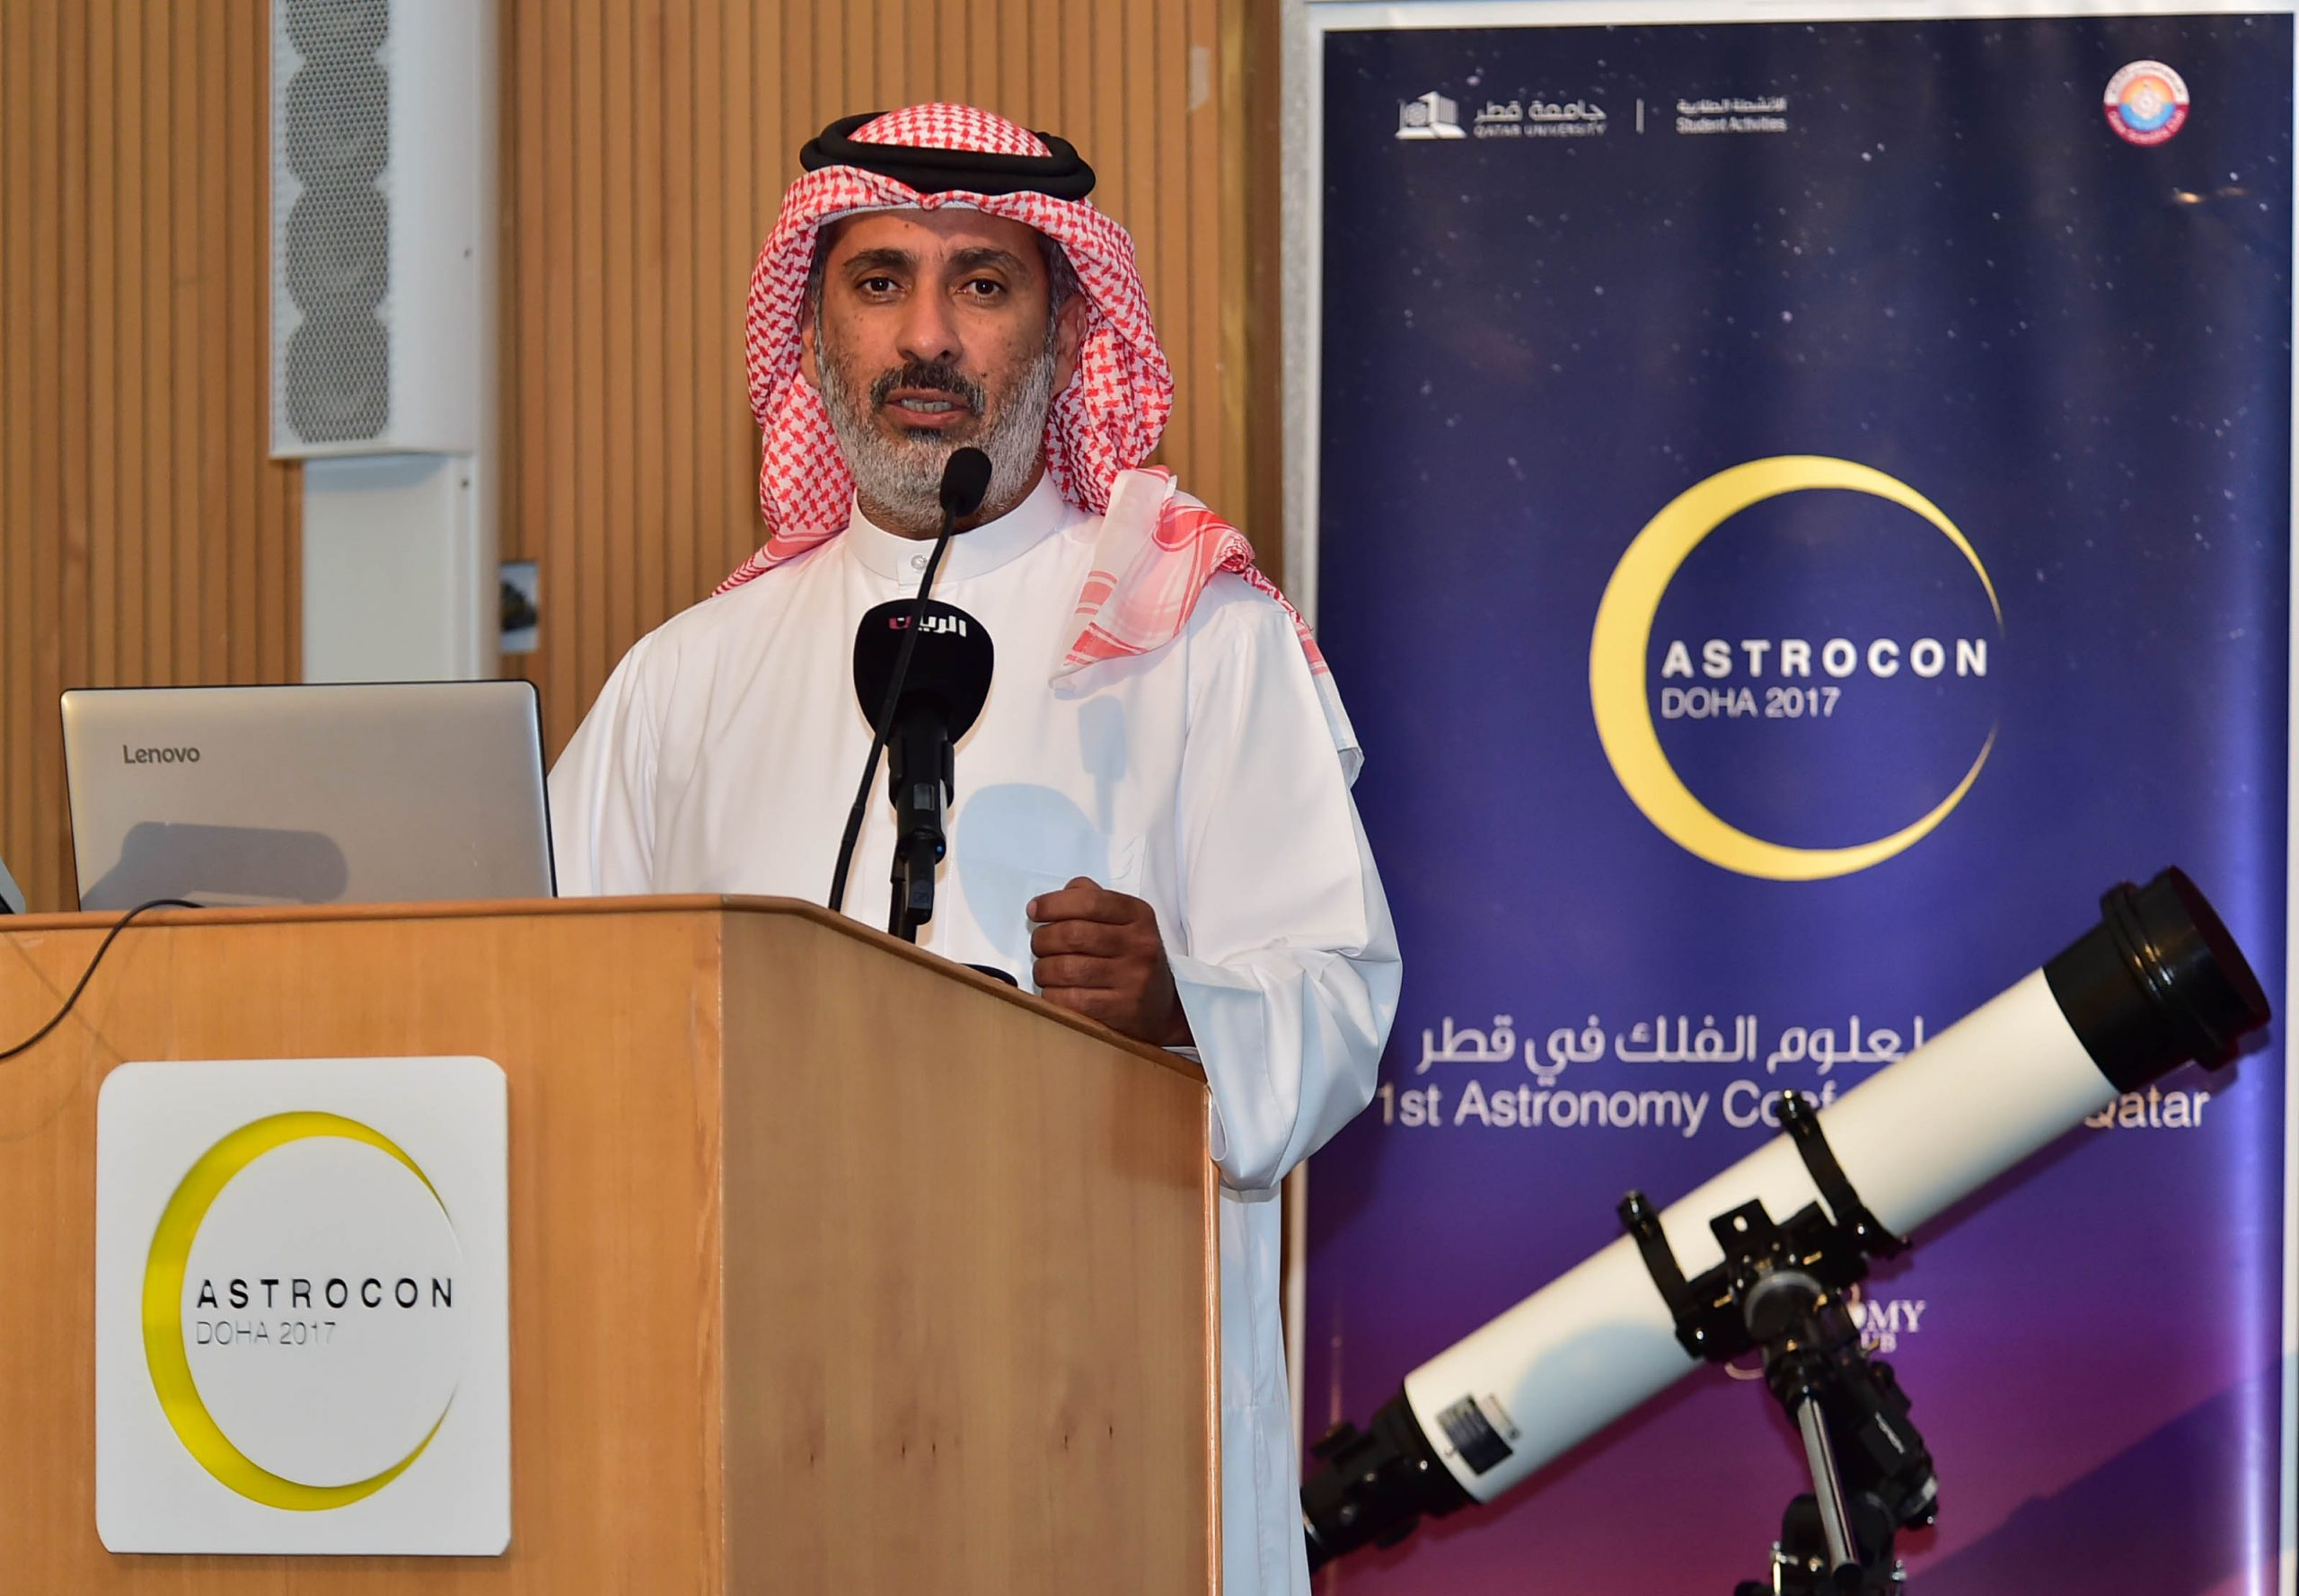 """Zodiac signs and their attributes are """"nonsense"""": Head of Qatar Astronomical Center"""